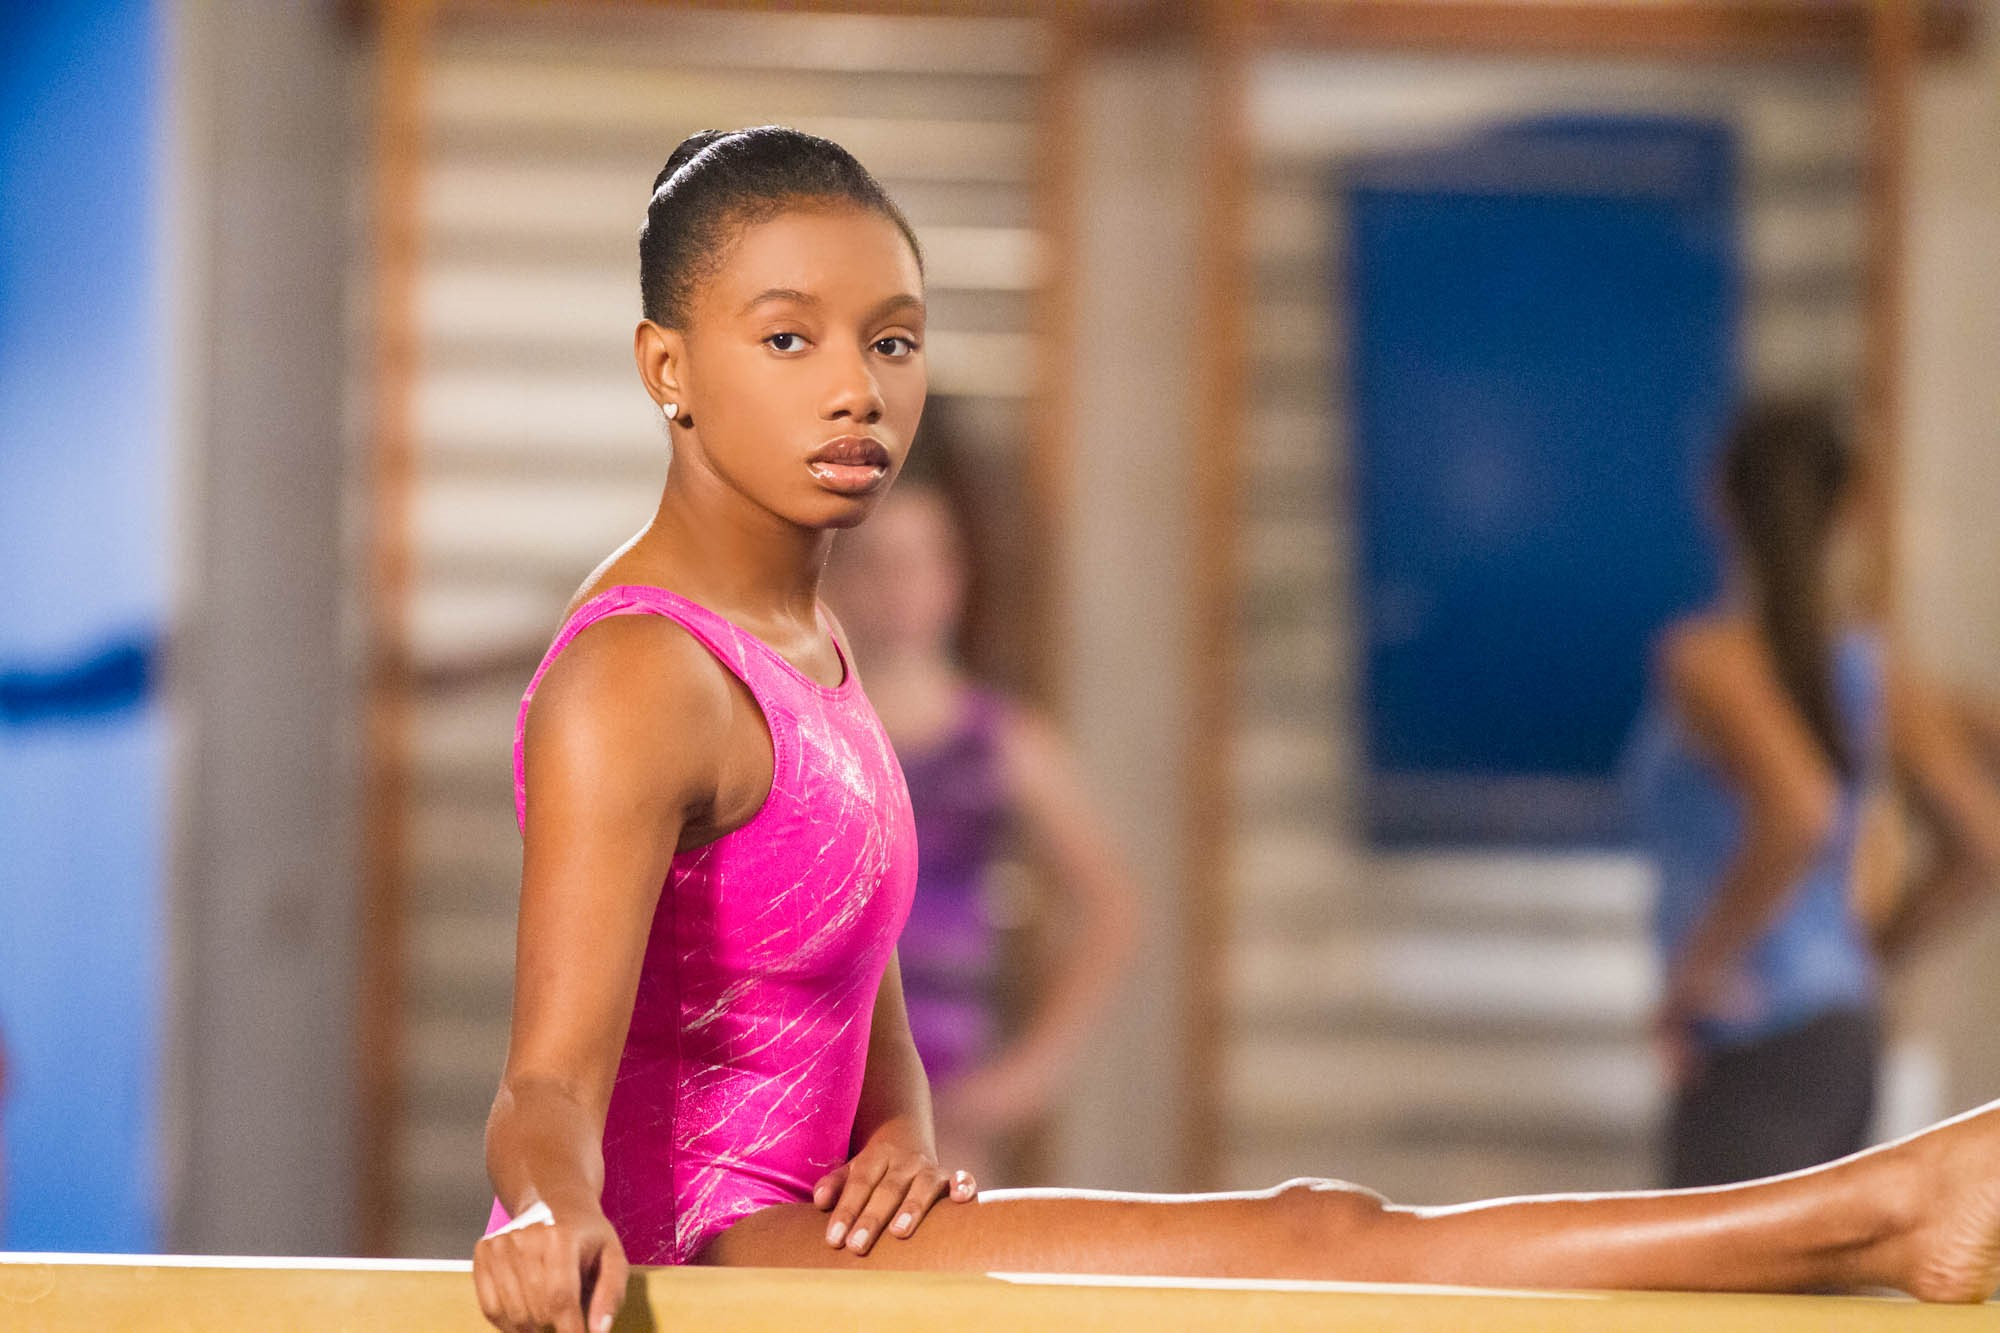 Actress, Imani Hakim portrays Gabby Douglass [Photo Credit: Lifetime Movie Network]